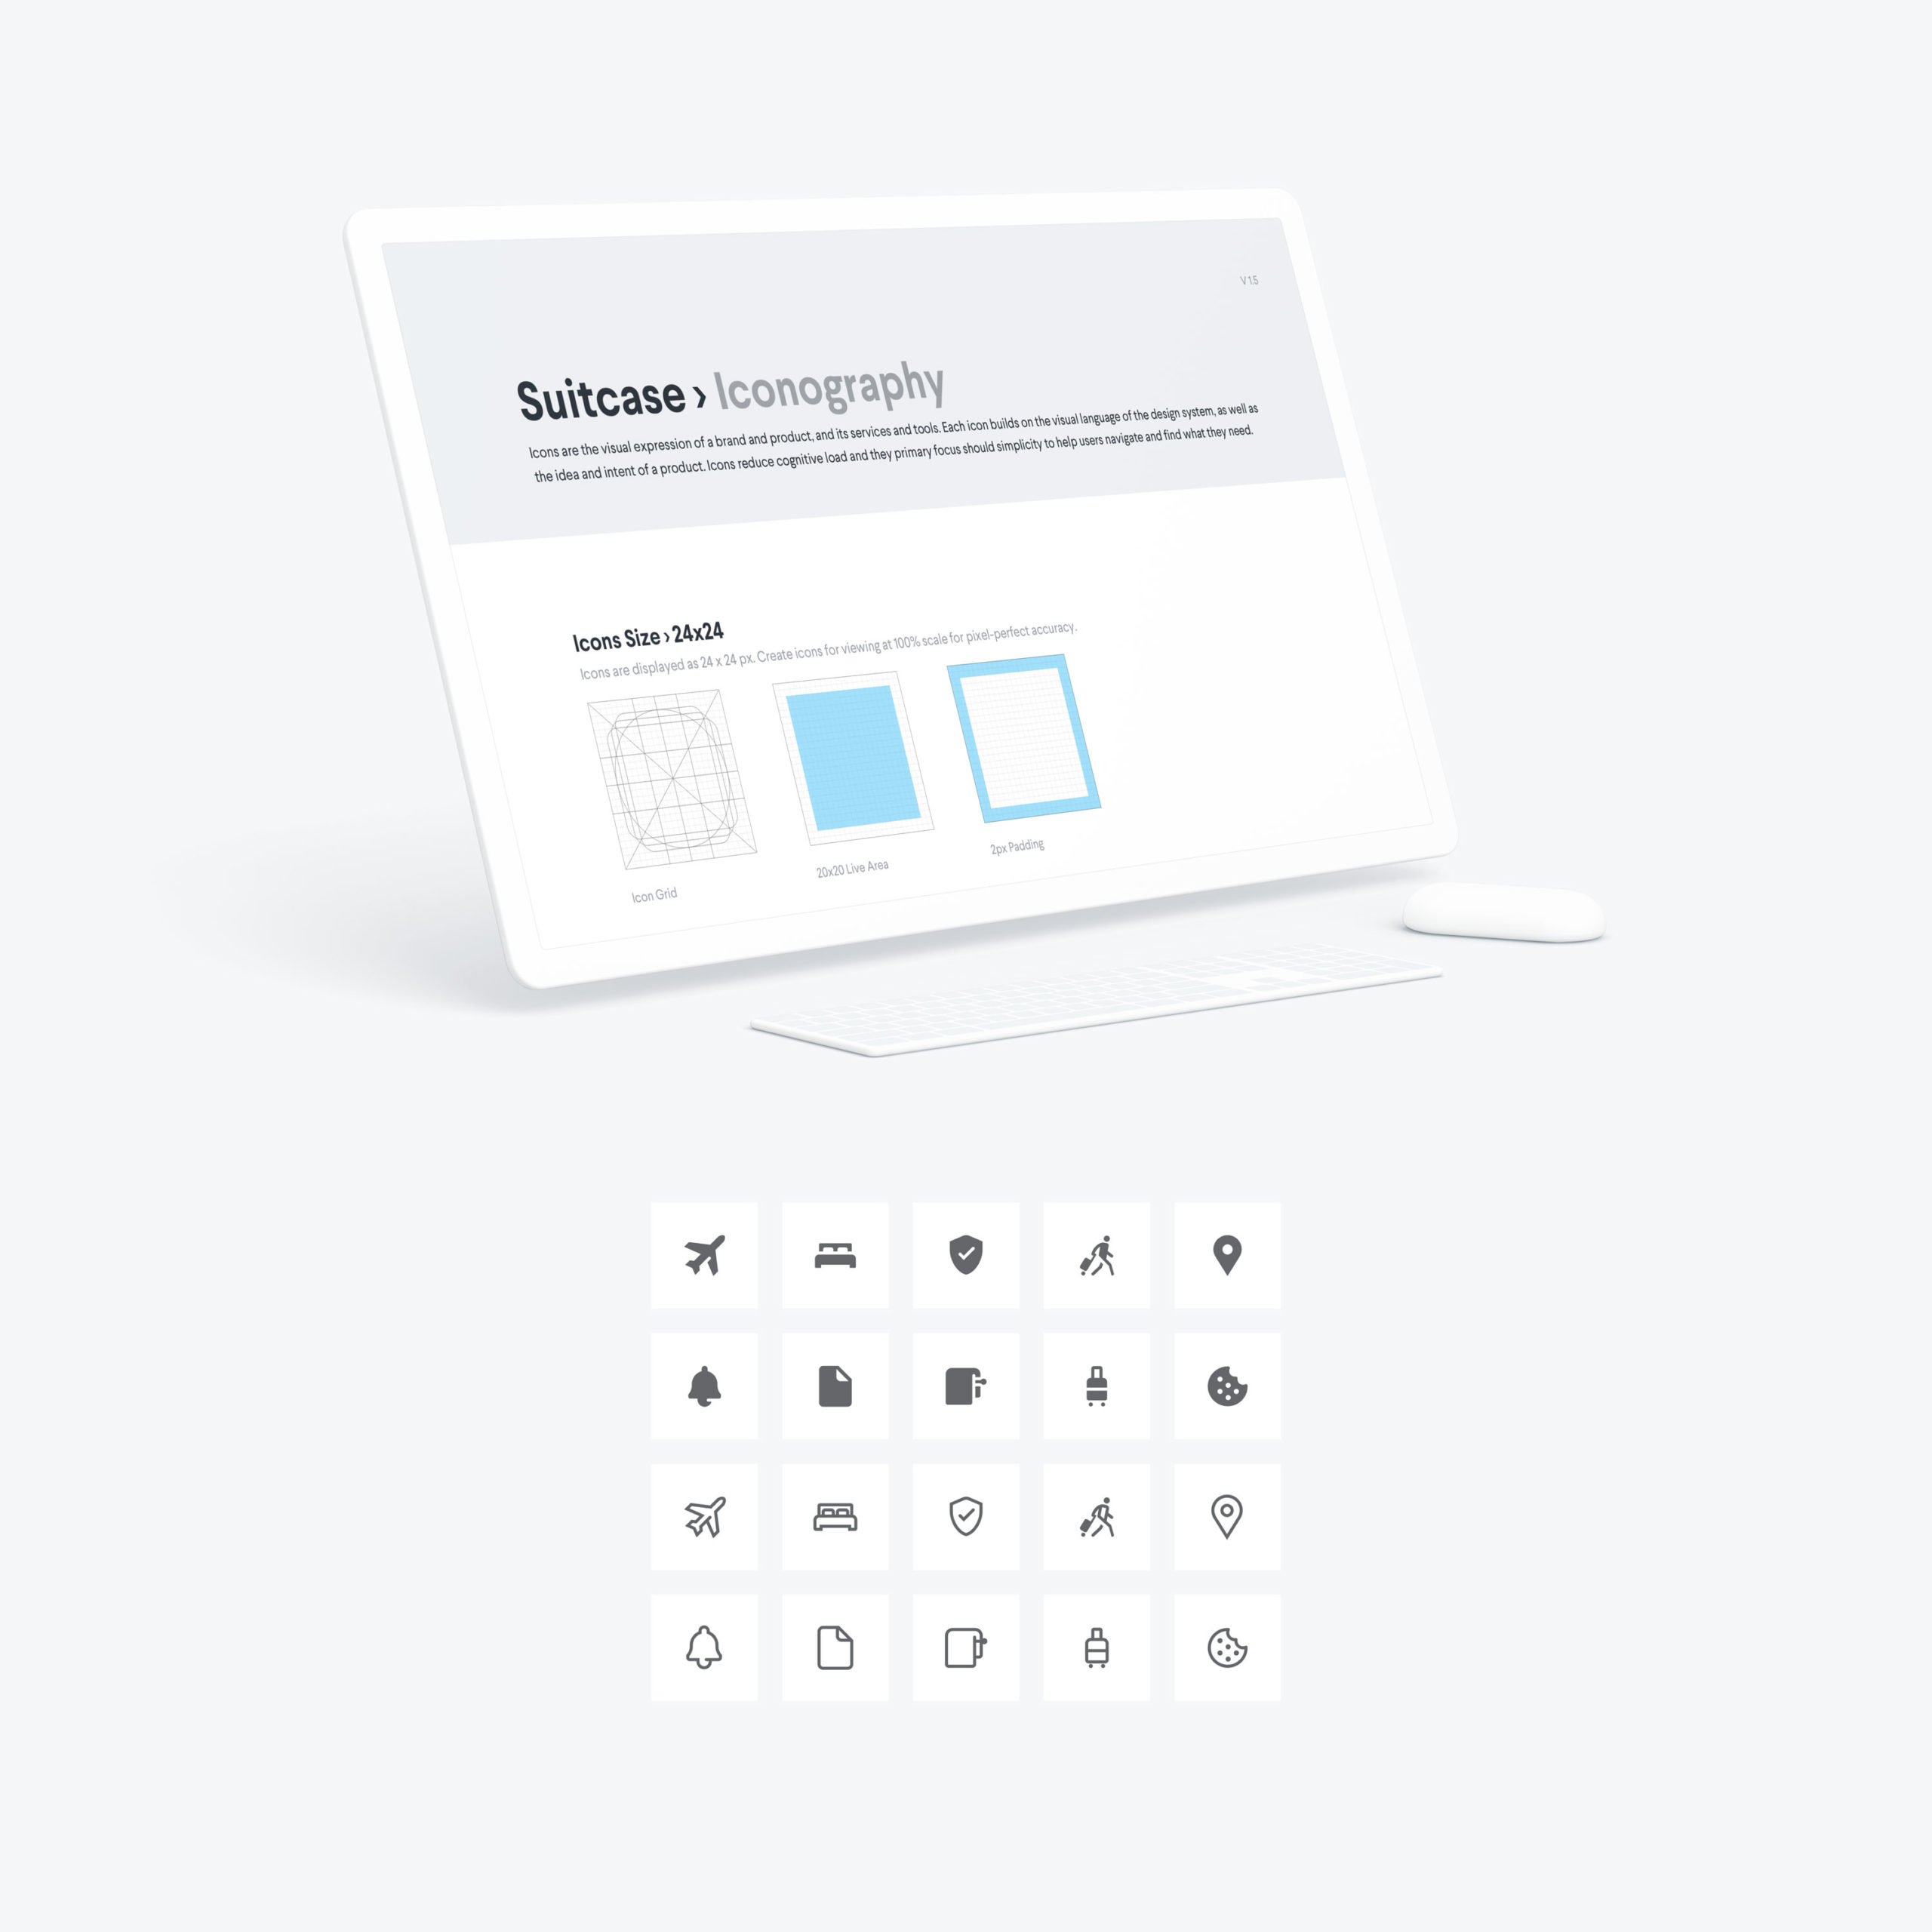 9-Suitcase-Icons-Guideline